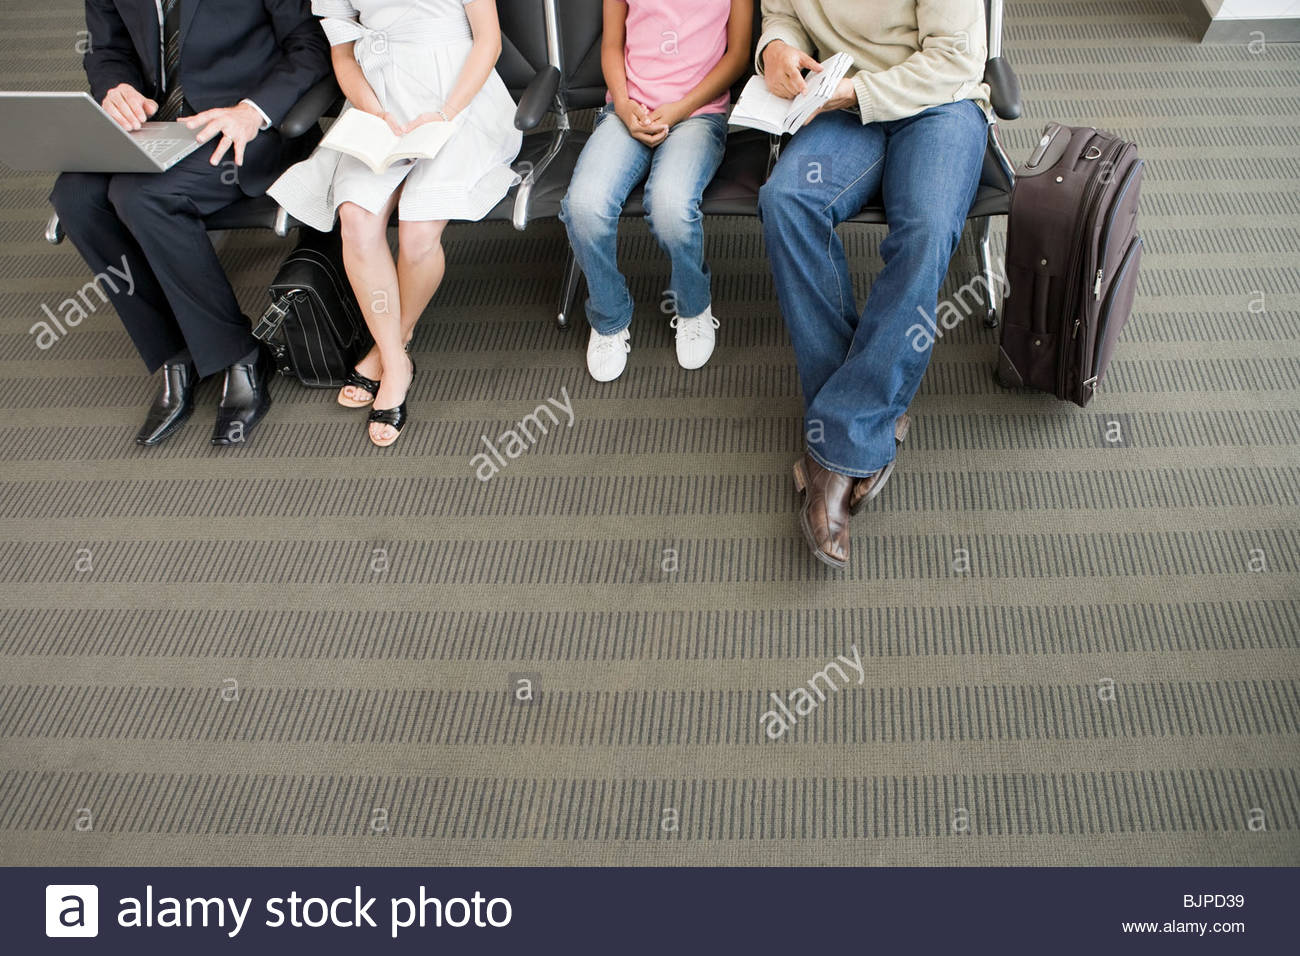 People waiting in the departure lounge - Stock Image